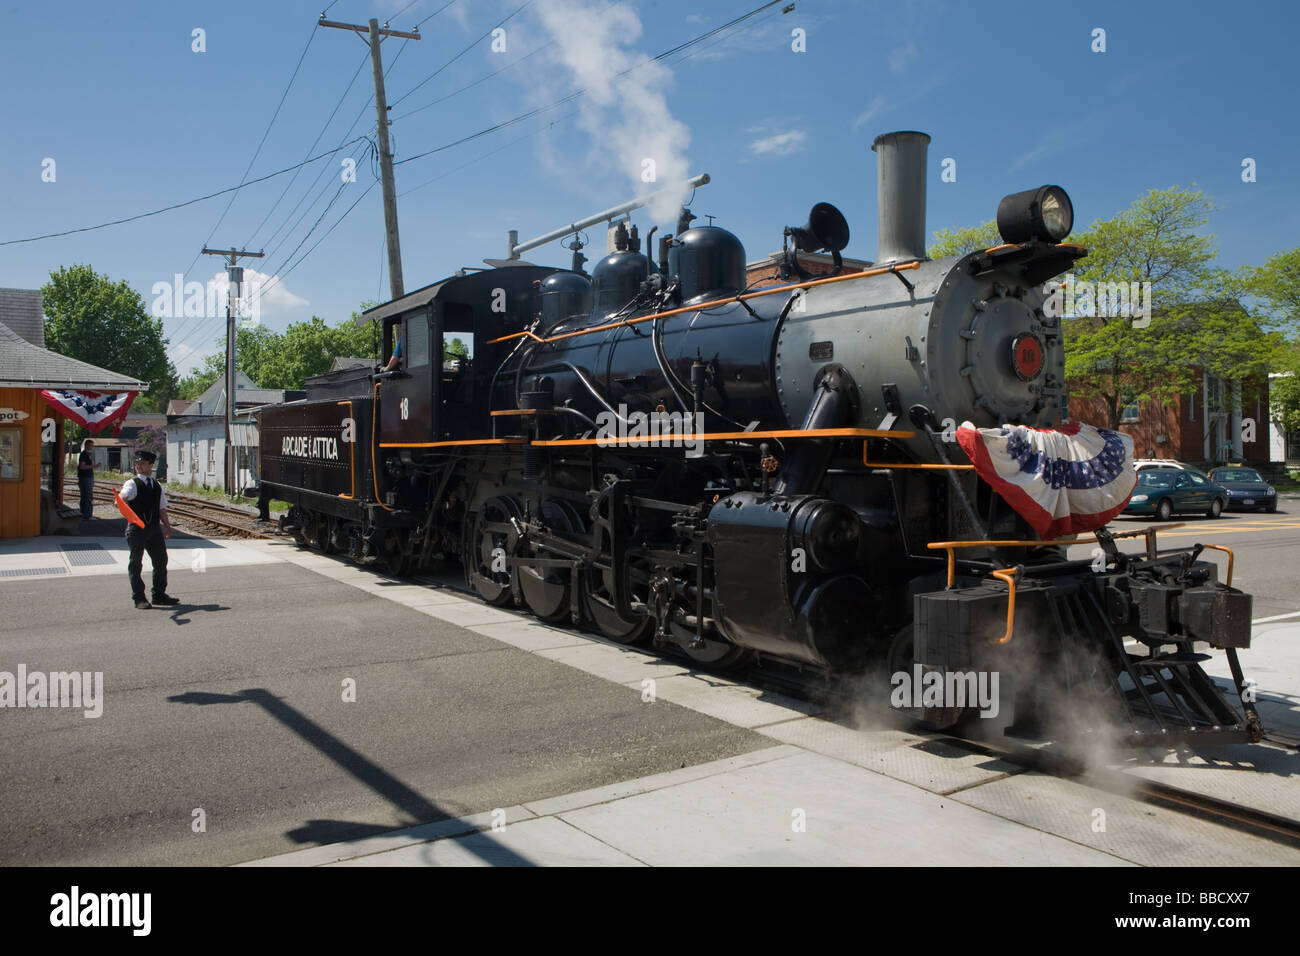 Steam excursion train Arcade and Attica Railroad leaving Arcade in western New York Wyoming County - Stock Image